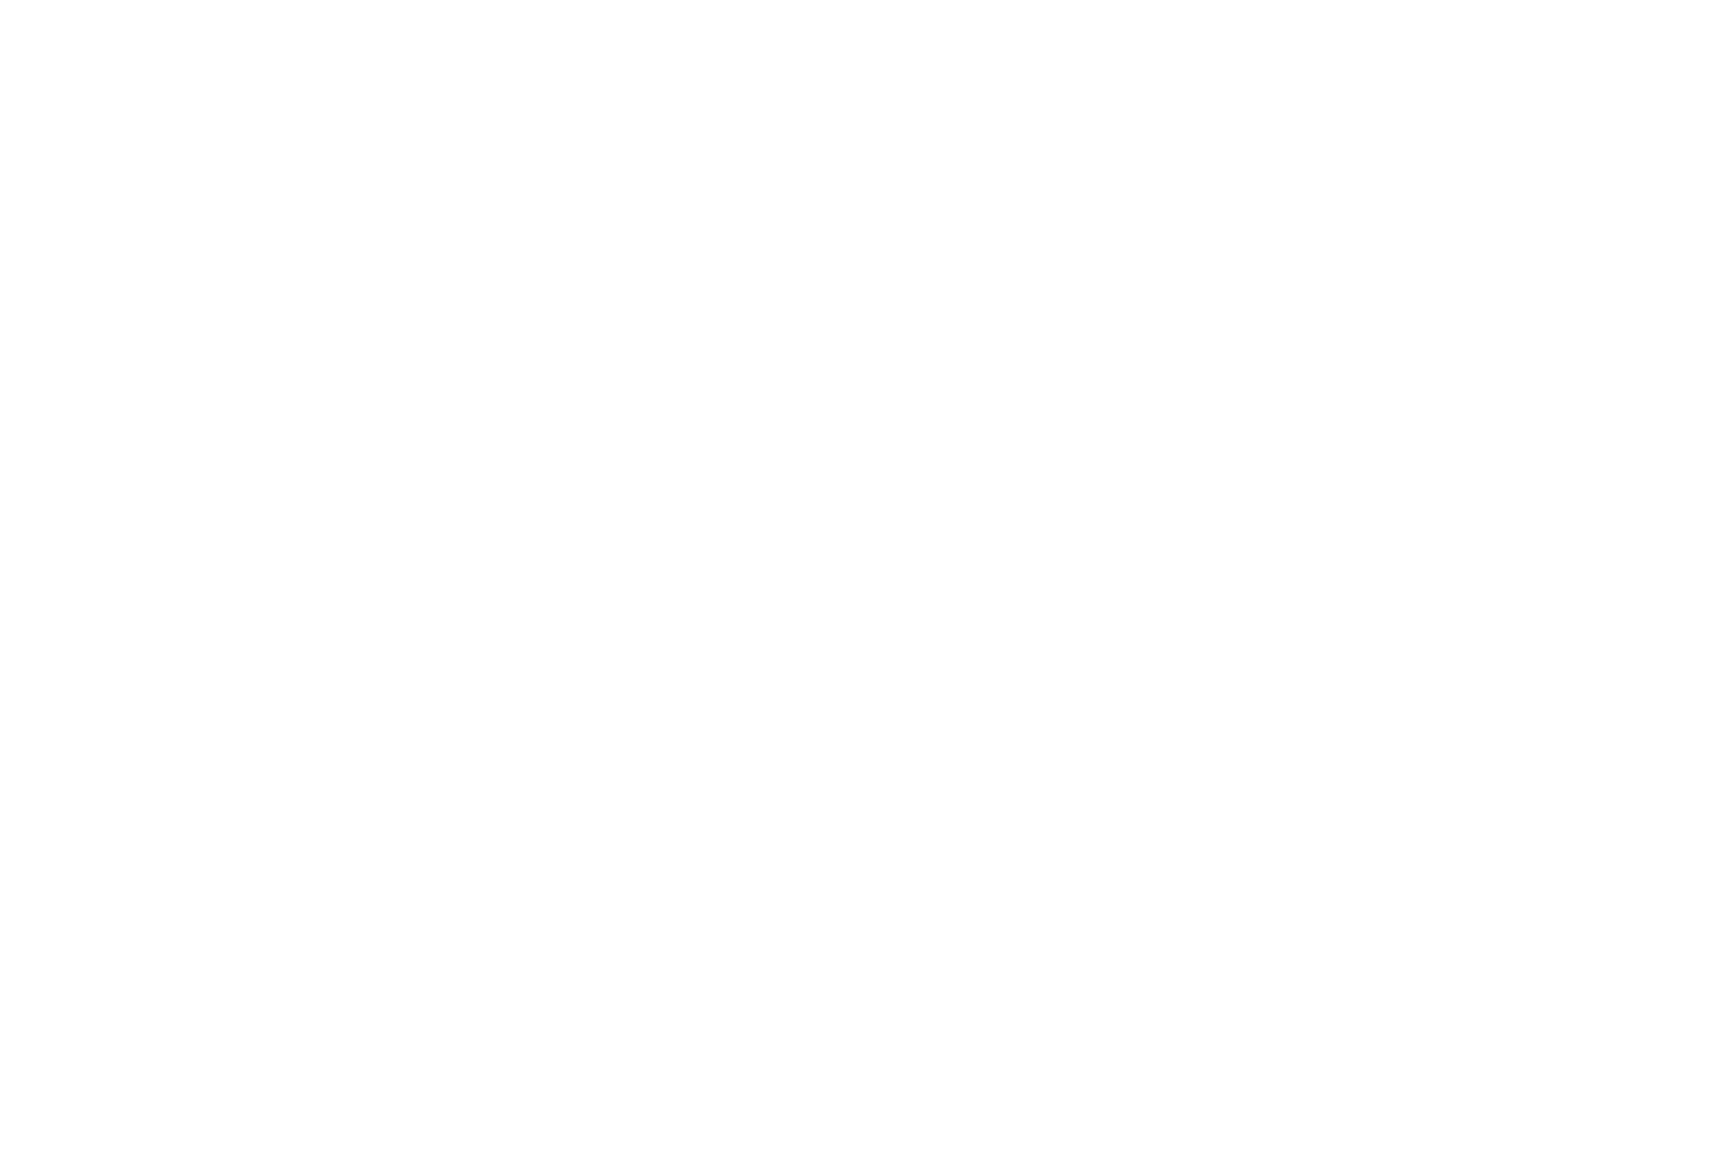 OFFICIAL SELECTION - Indy Film Festival - 2017 copy.png